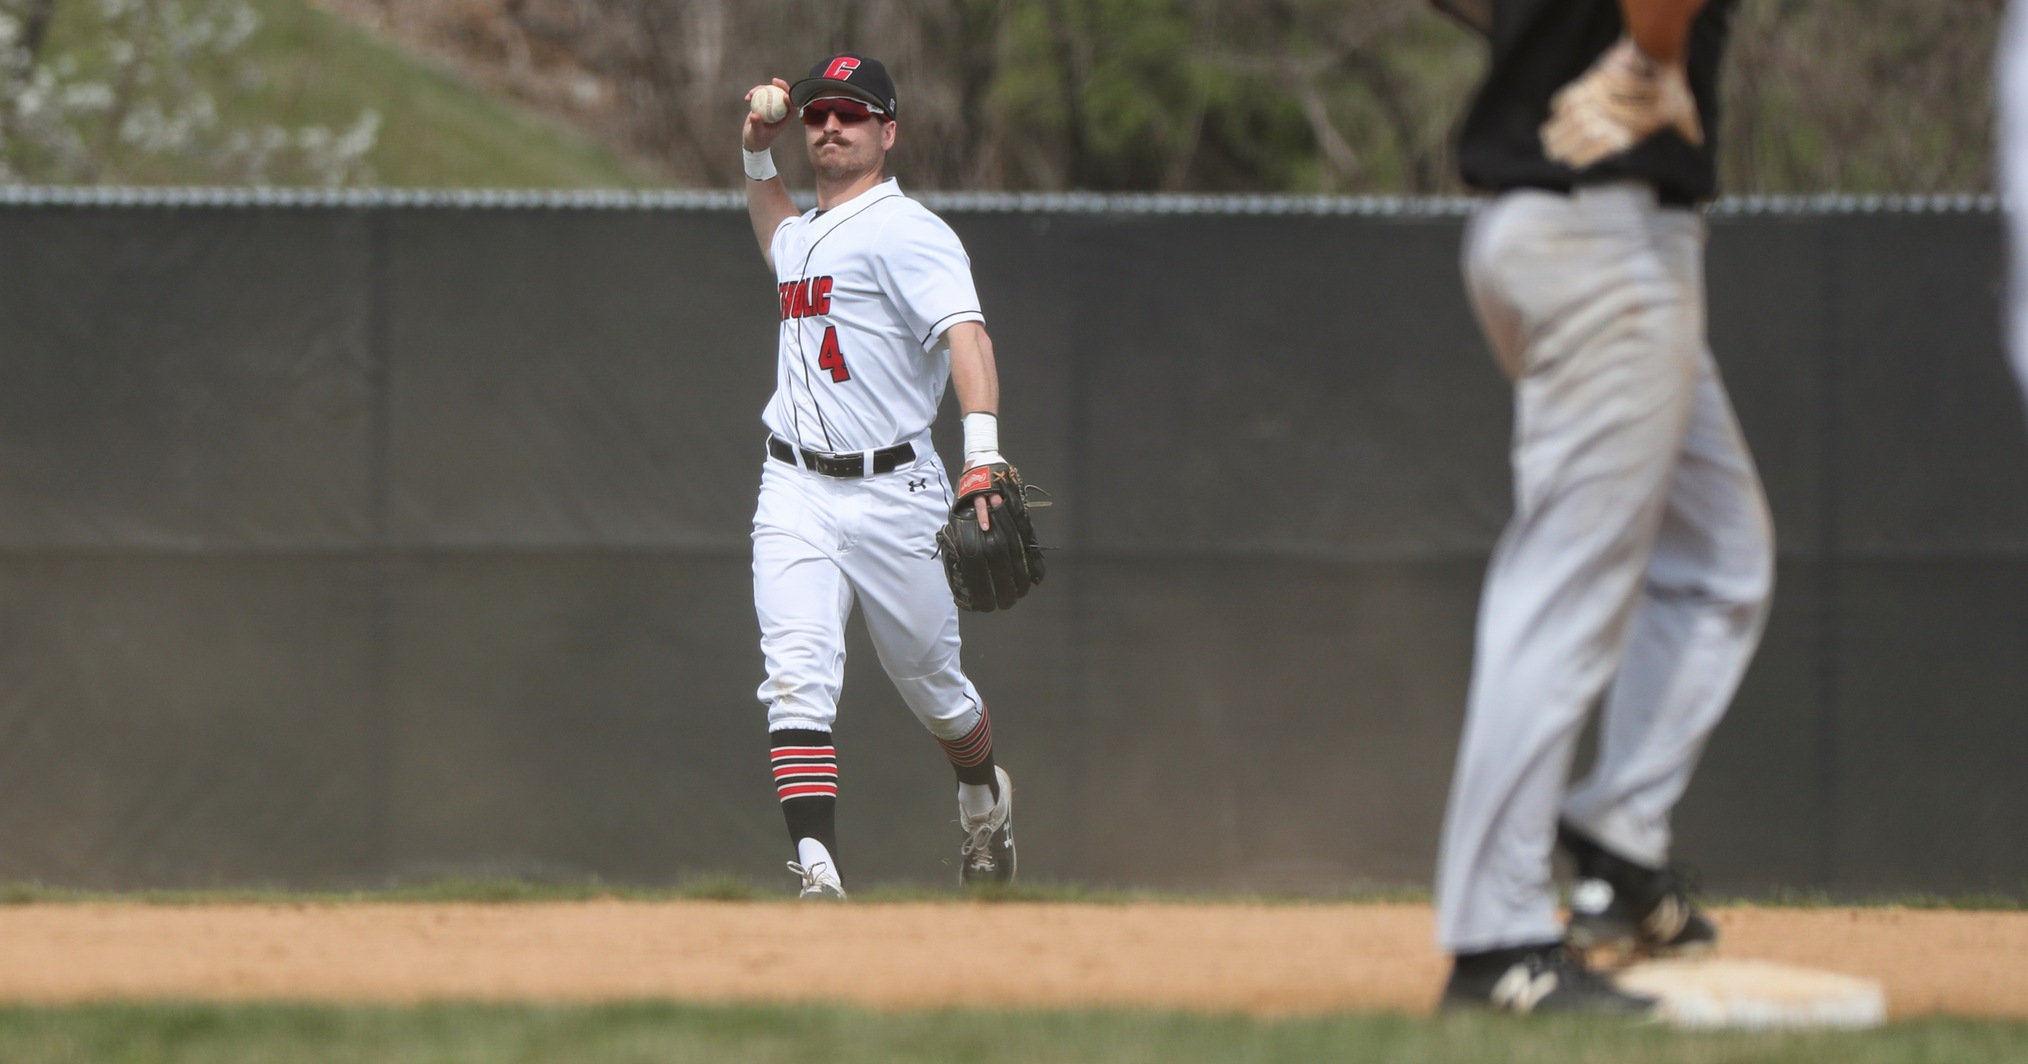 Cardinals Complete Landmark Sweep Over Juniata, 6-4